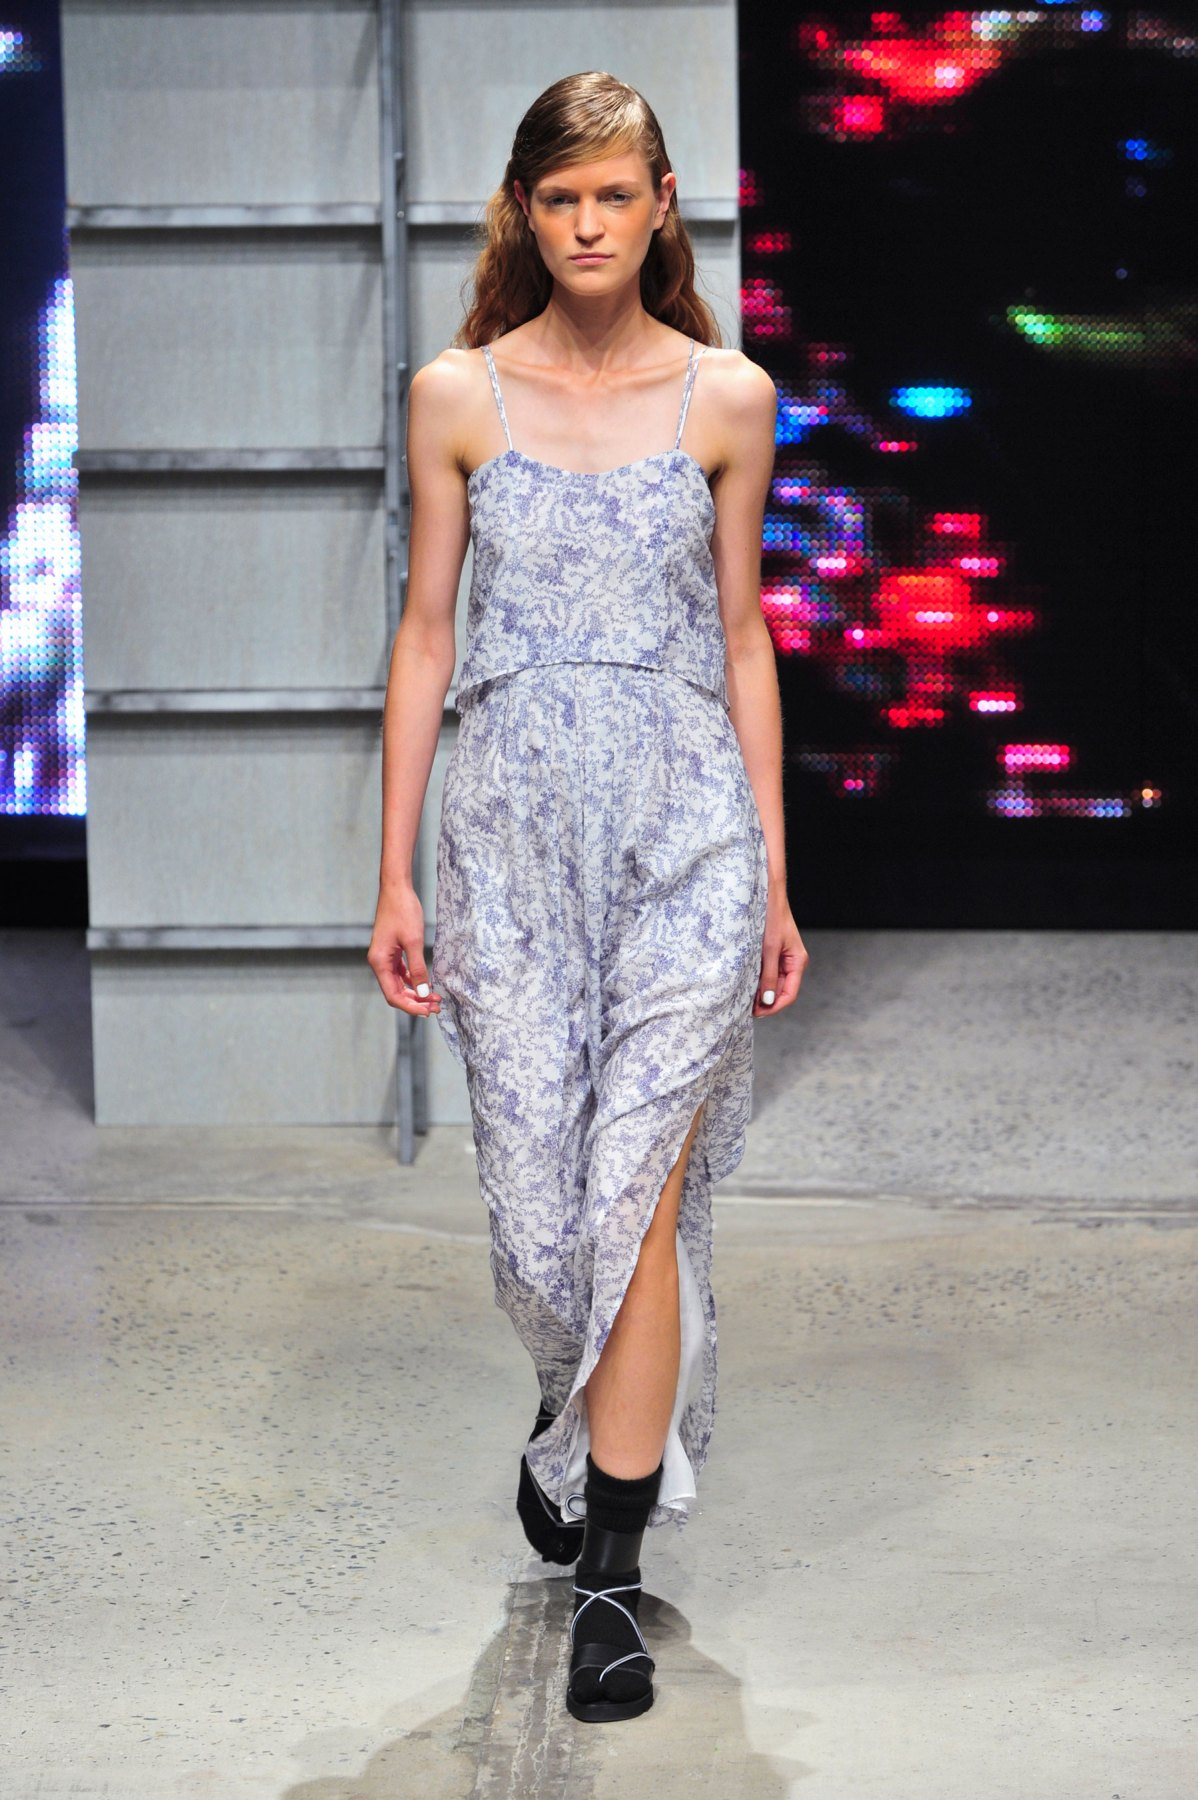 desfile-band-of-outsiders-nova-york-verao-2014-018